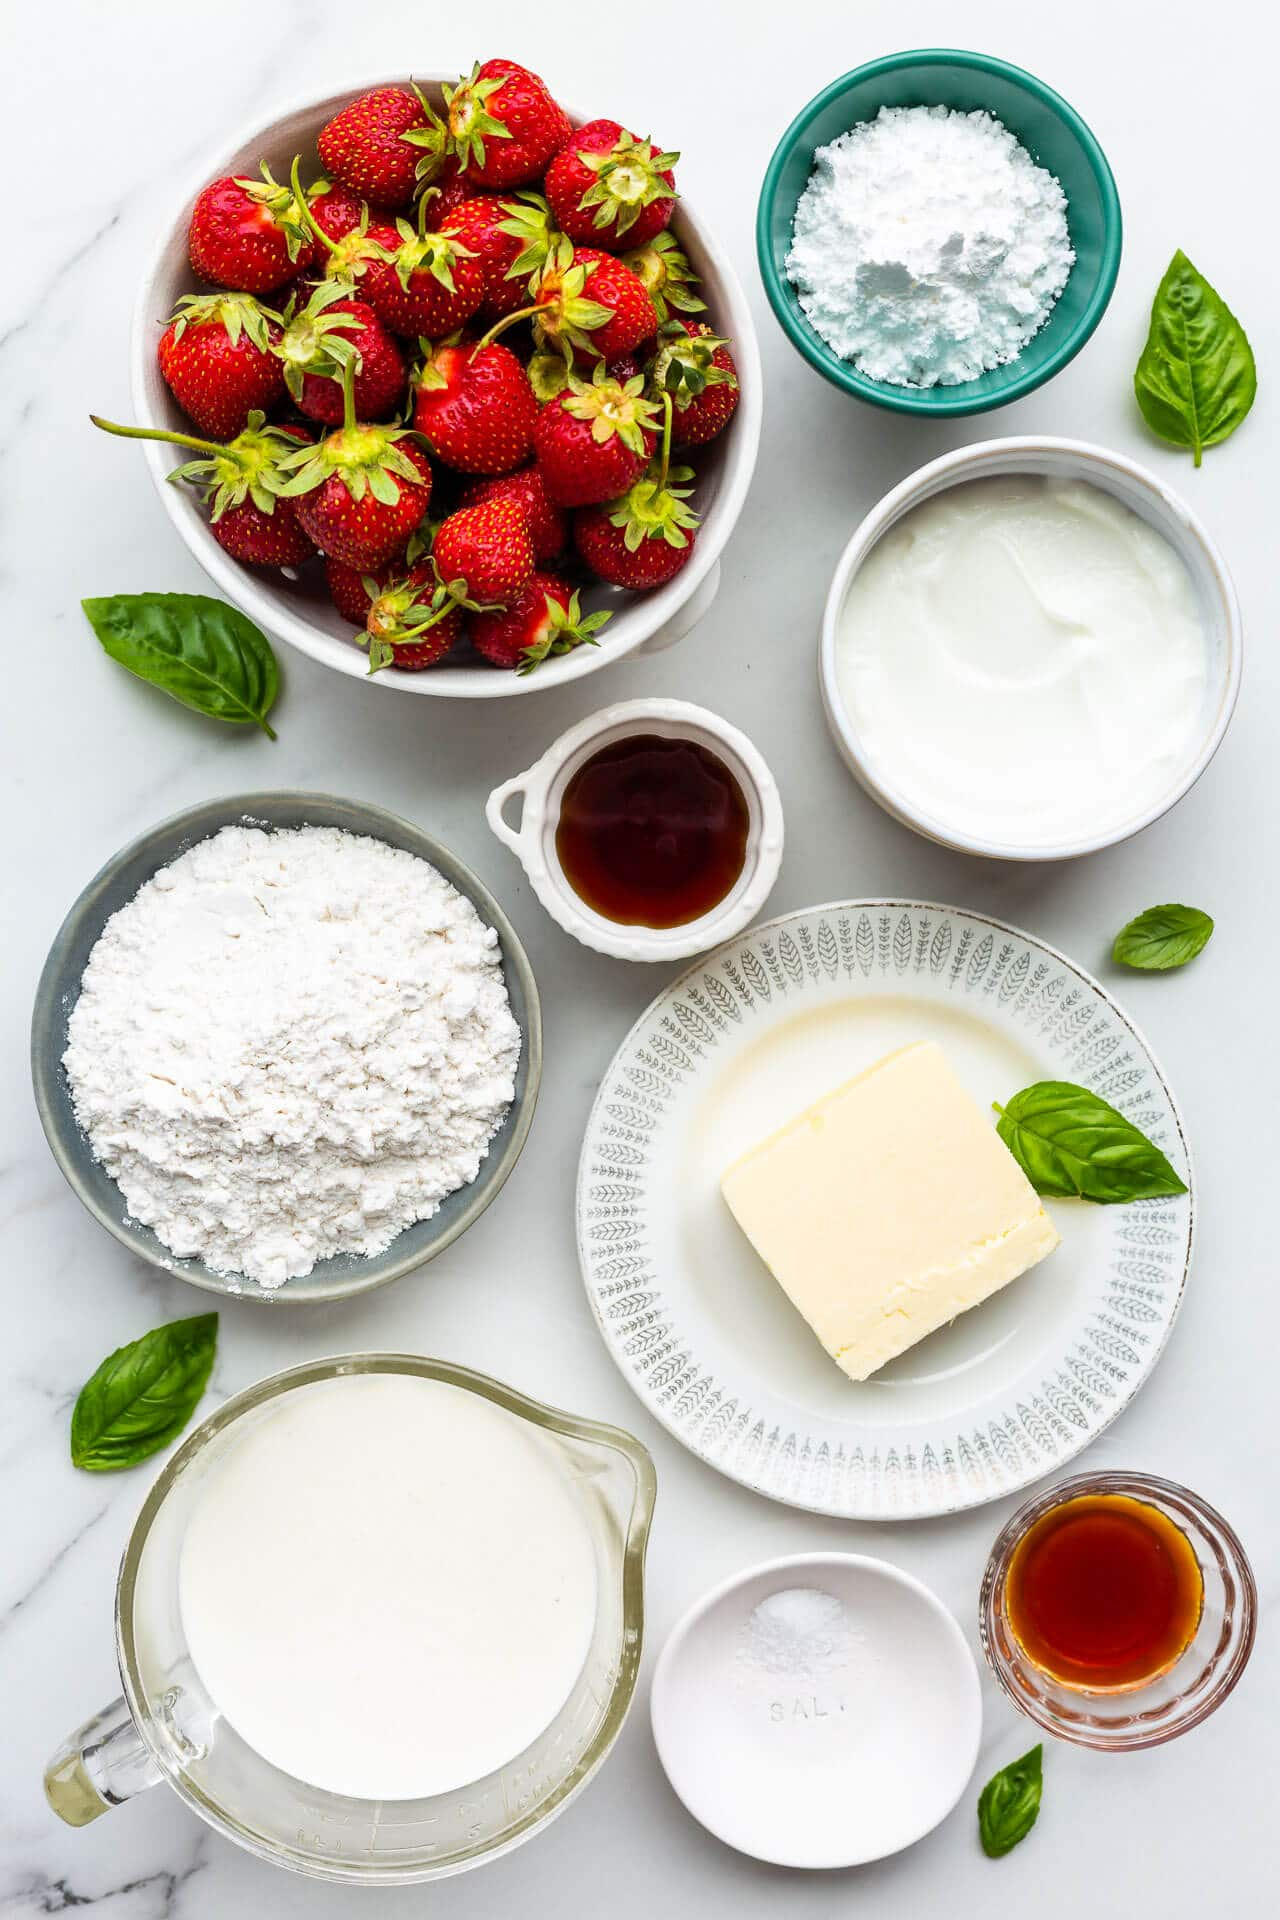 ingredients measured out for making a fresh strawberry tart with a shortbread cookie crust